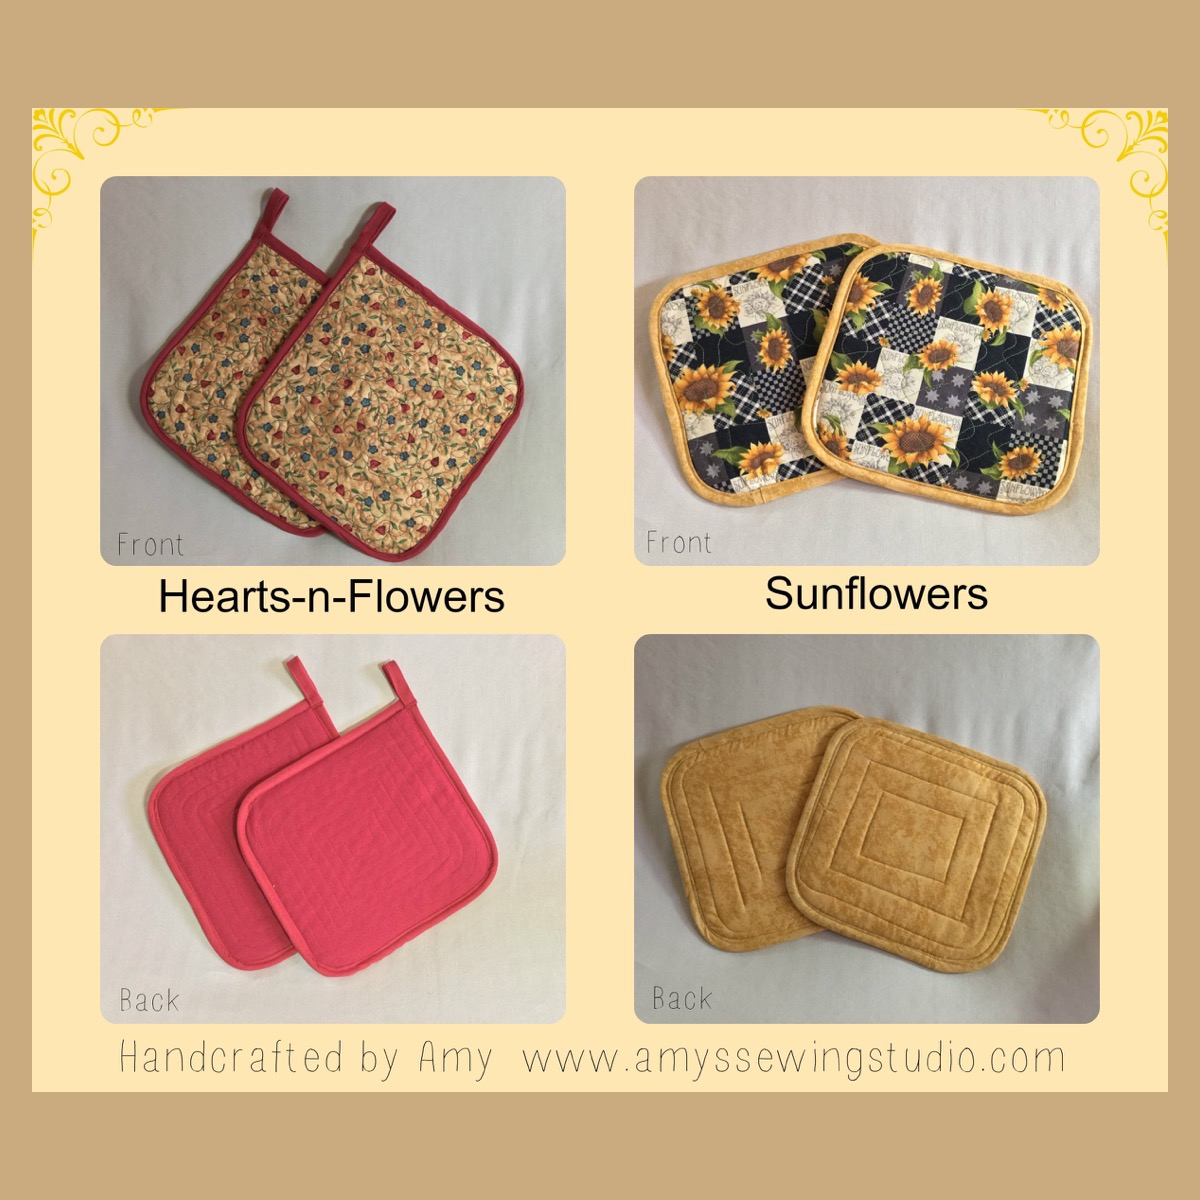 How To Make Quilted Potholders To Fit The Larger Than Average Size Hand